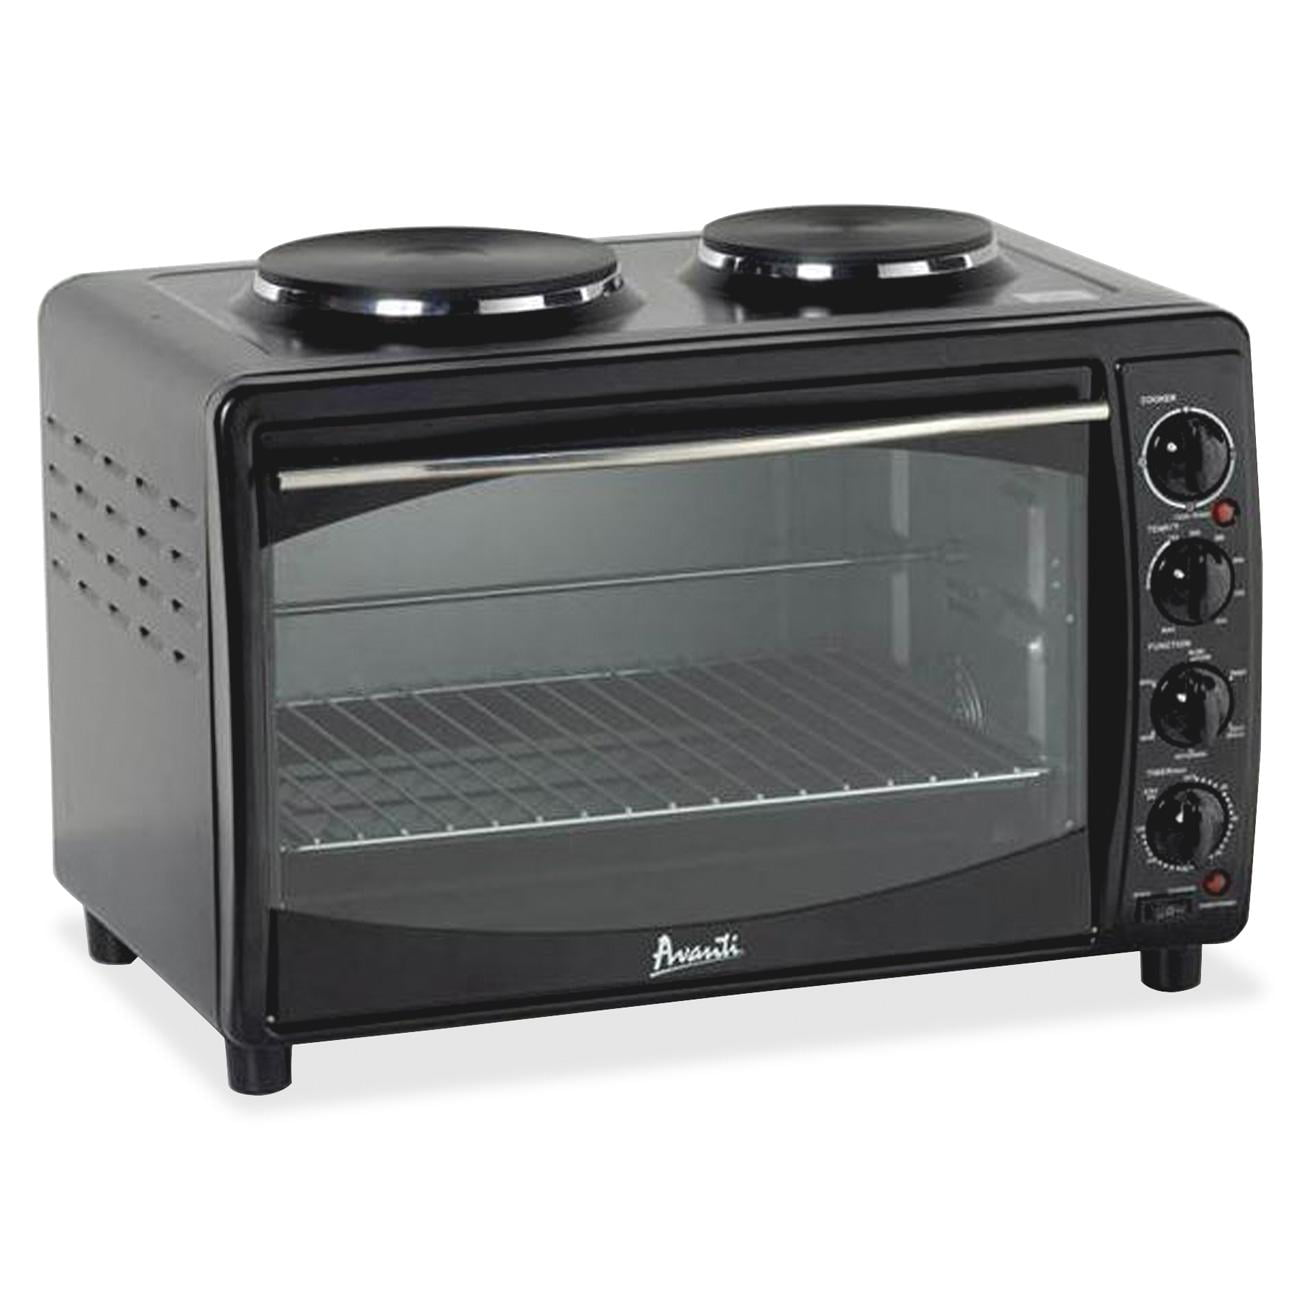 Avanti Mkb42b Electric Oven W ss Cabinet & Handle by Avanti Products